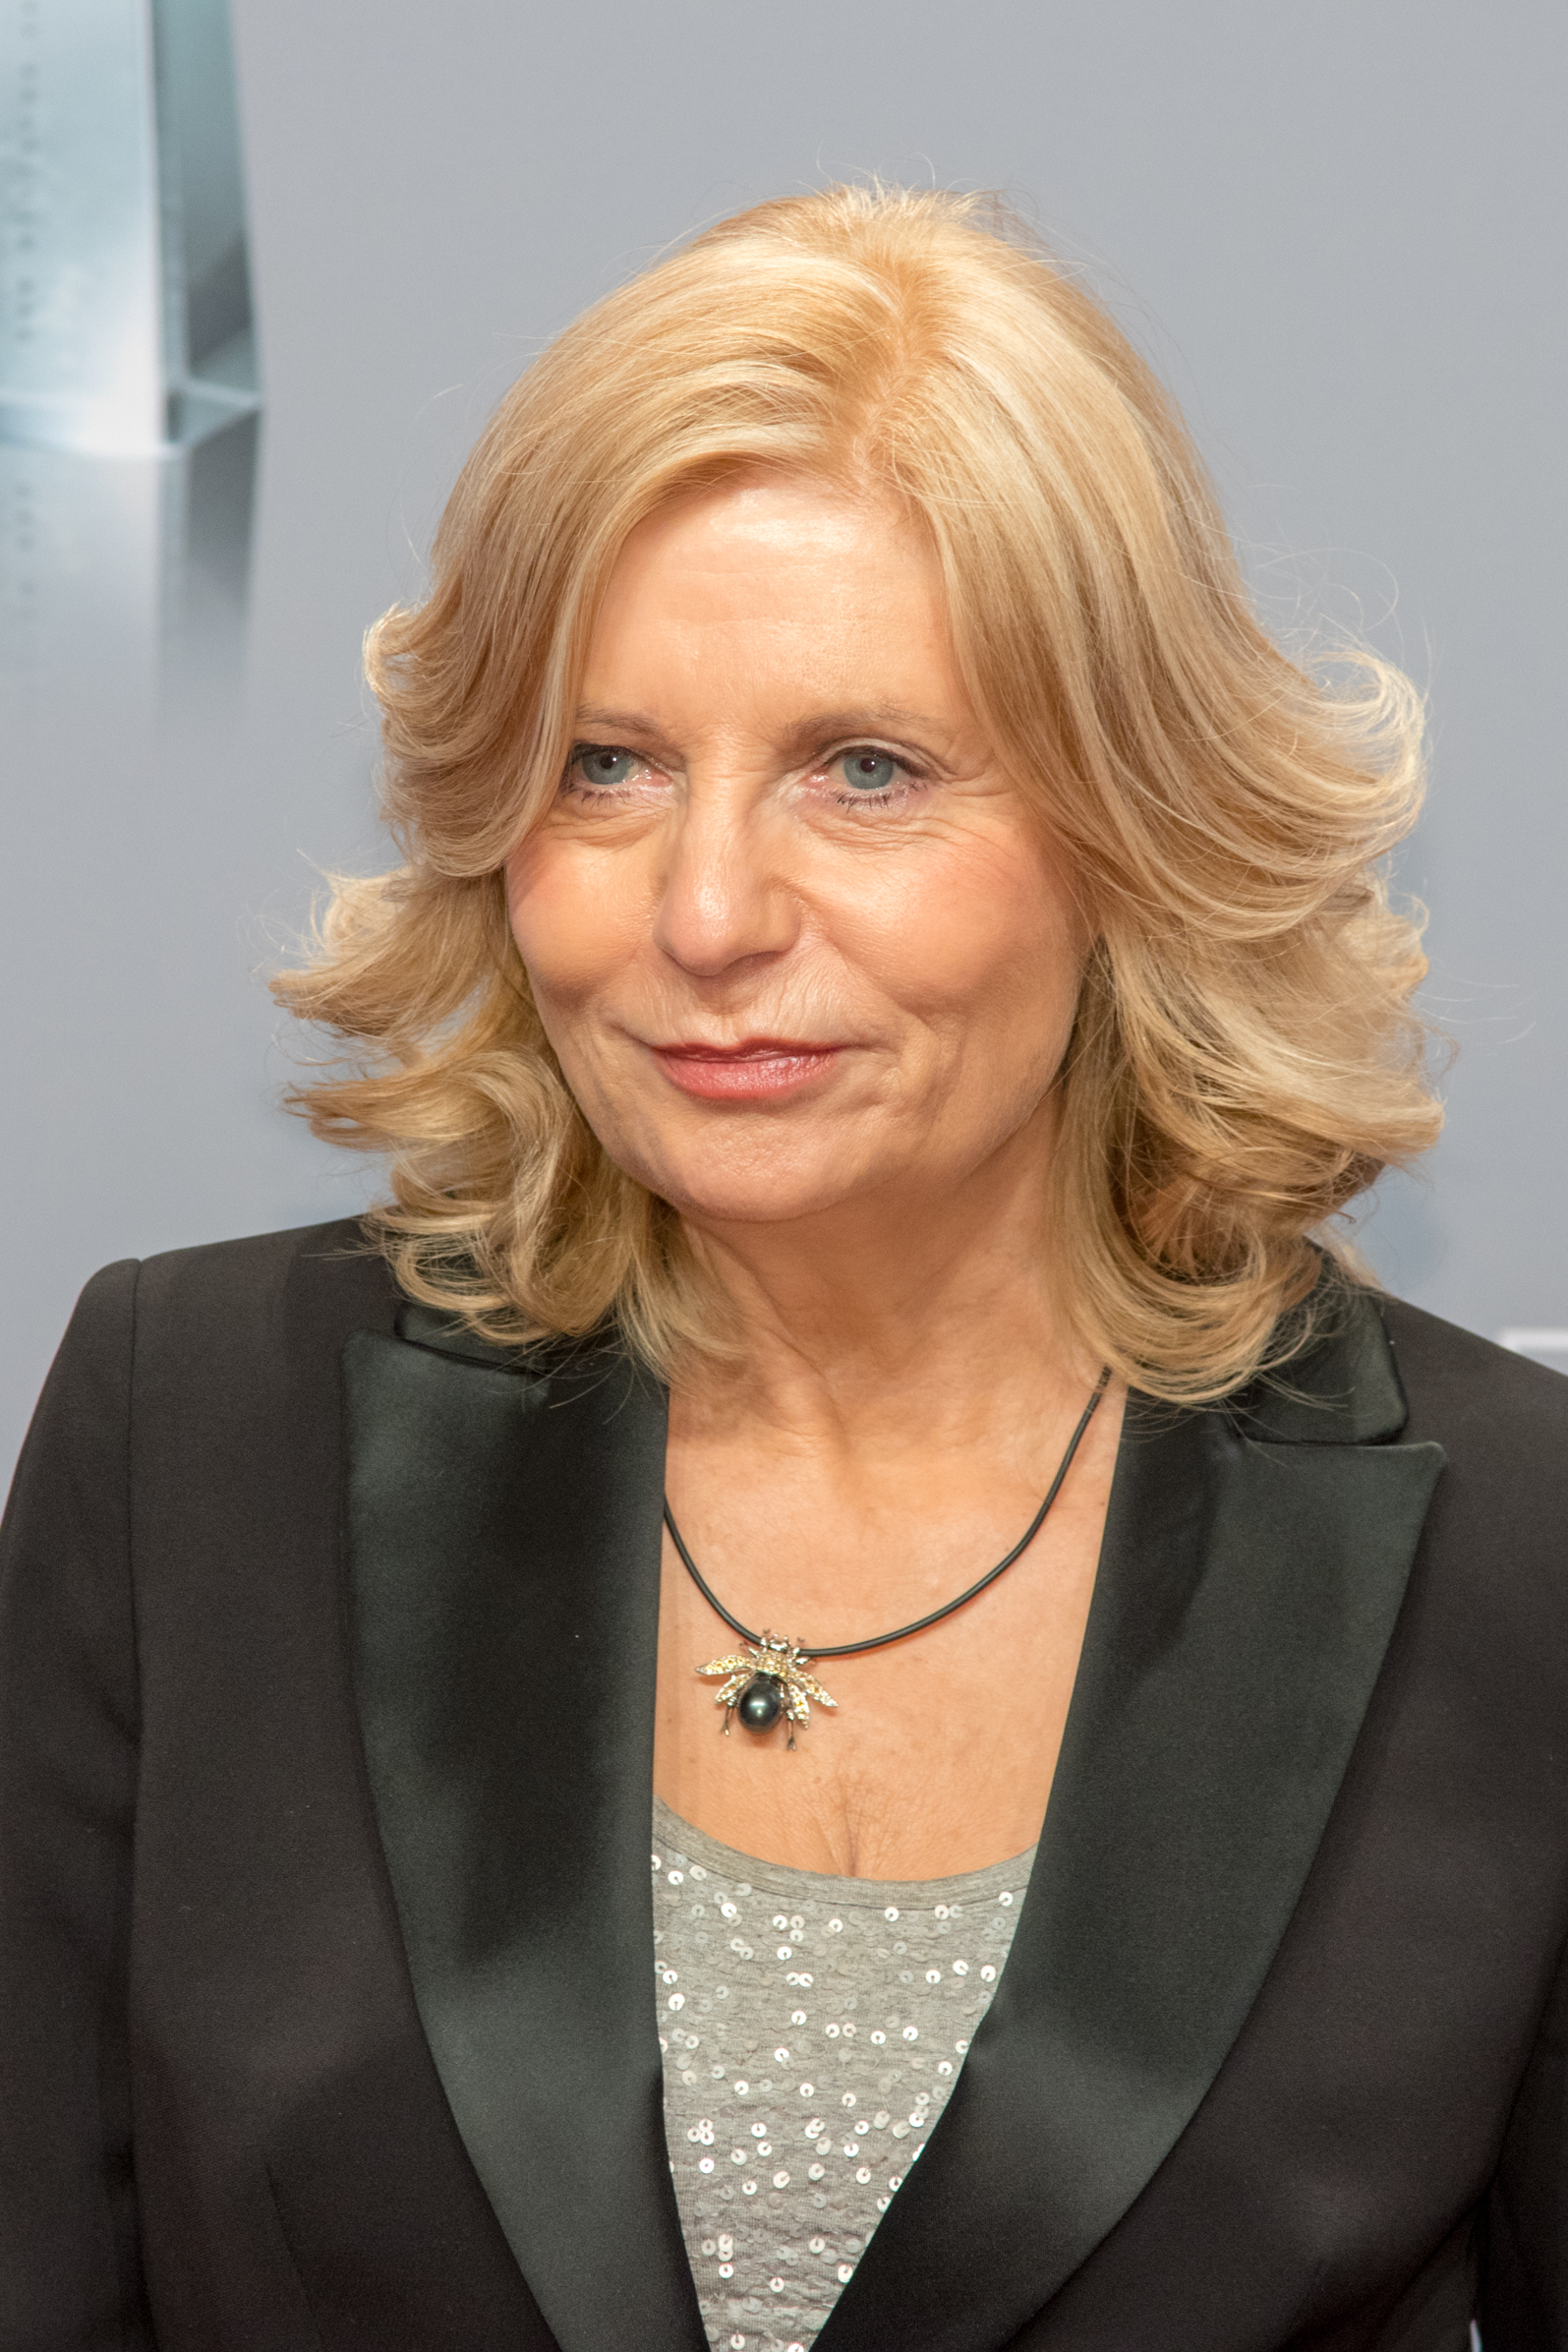 The 64-year old daughter of father (?) and mother(?) Sabine Postel in 2018 photo. Sabine Postel earned a  million dollar salary - leaving the net worth at 1 million in 2018